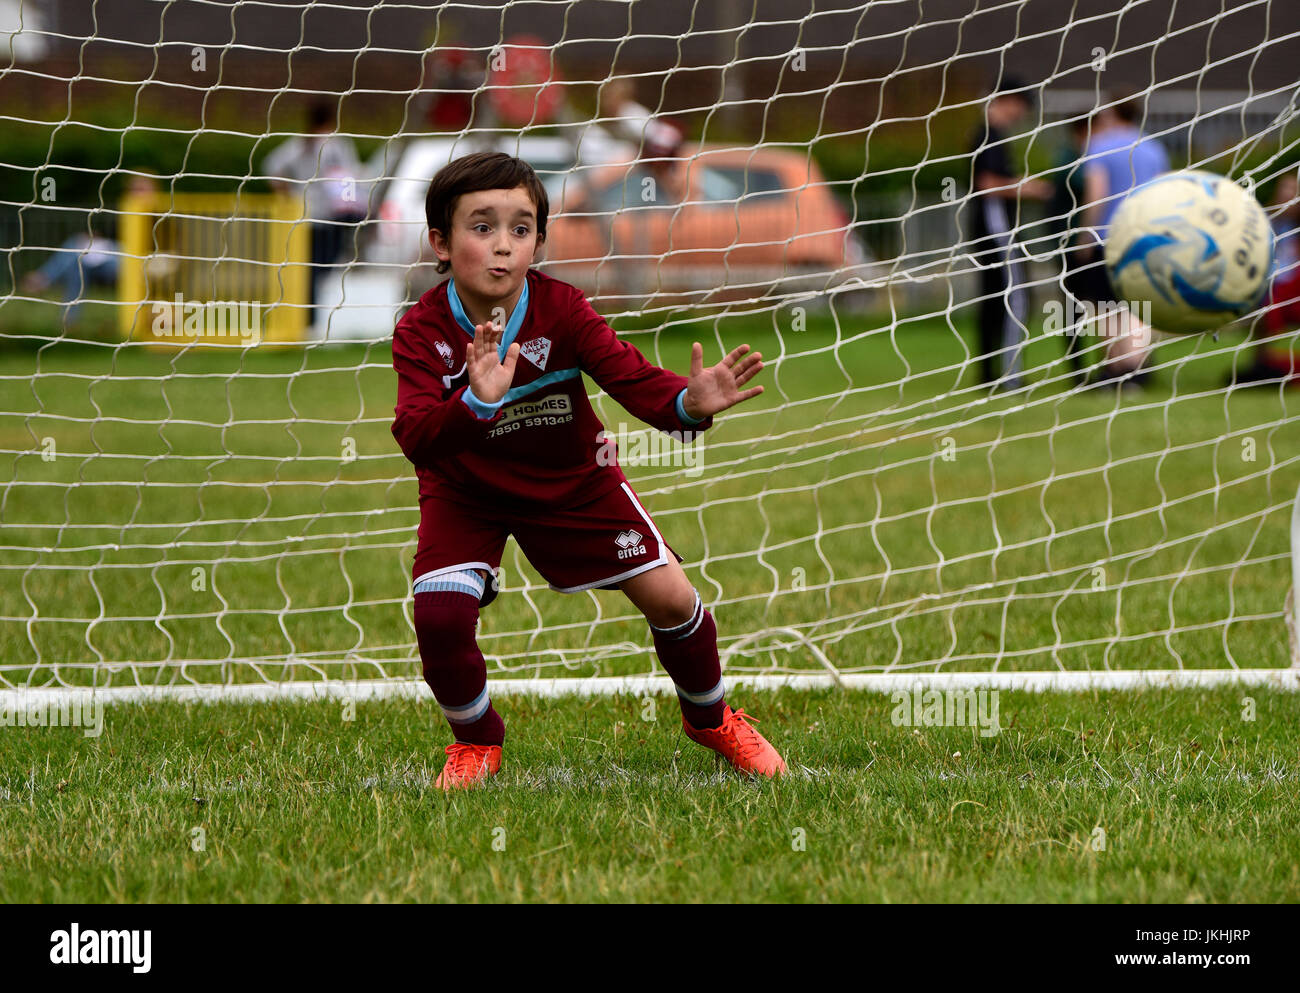 Goalkeeper attempting to save a penalty during an Under 10 years penalty shootout competition, Bordon, Hampshire, - Stock Image